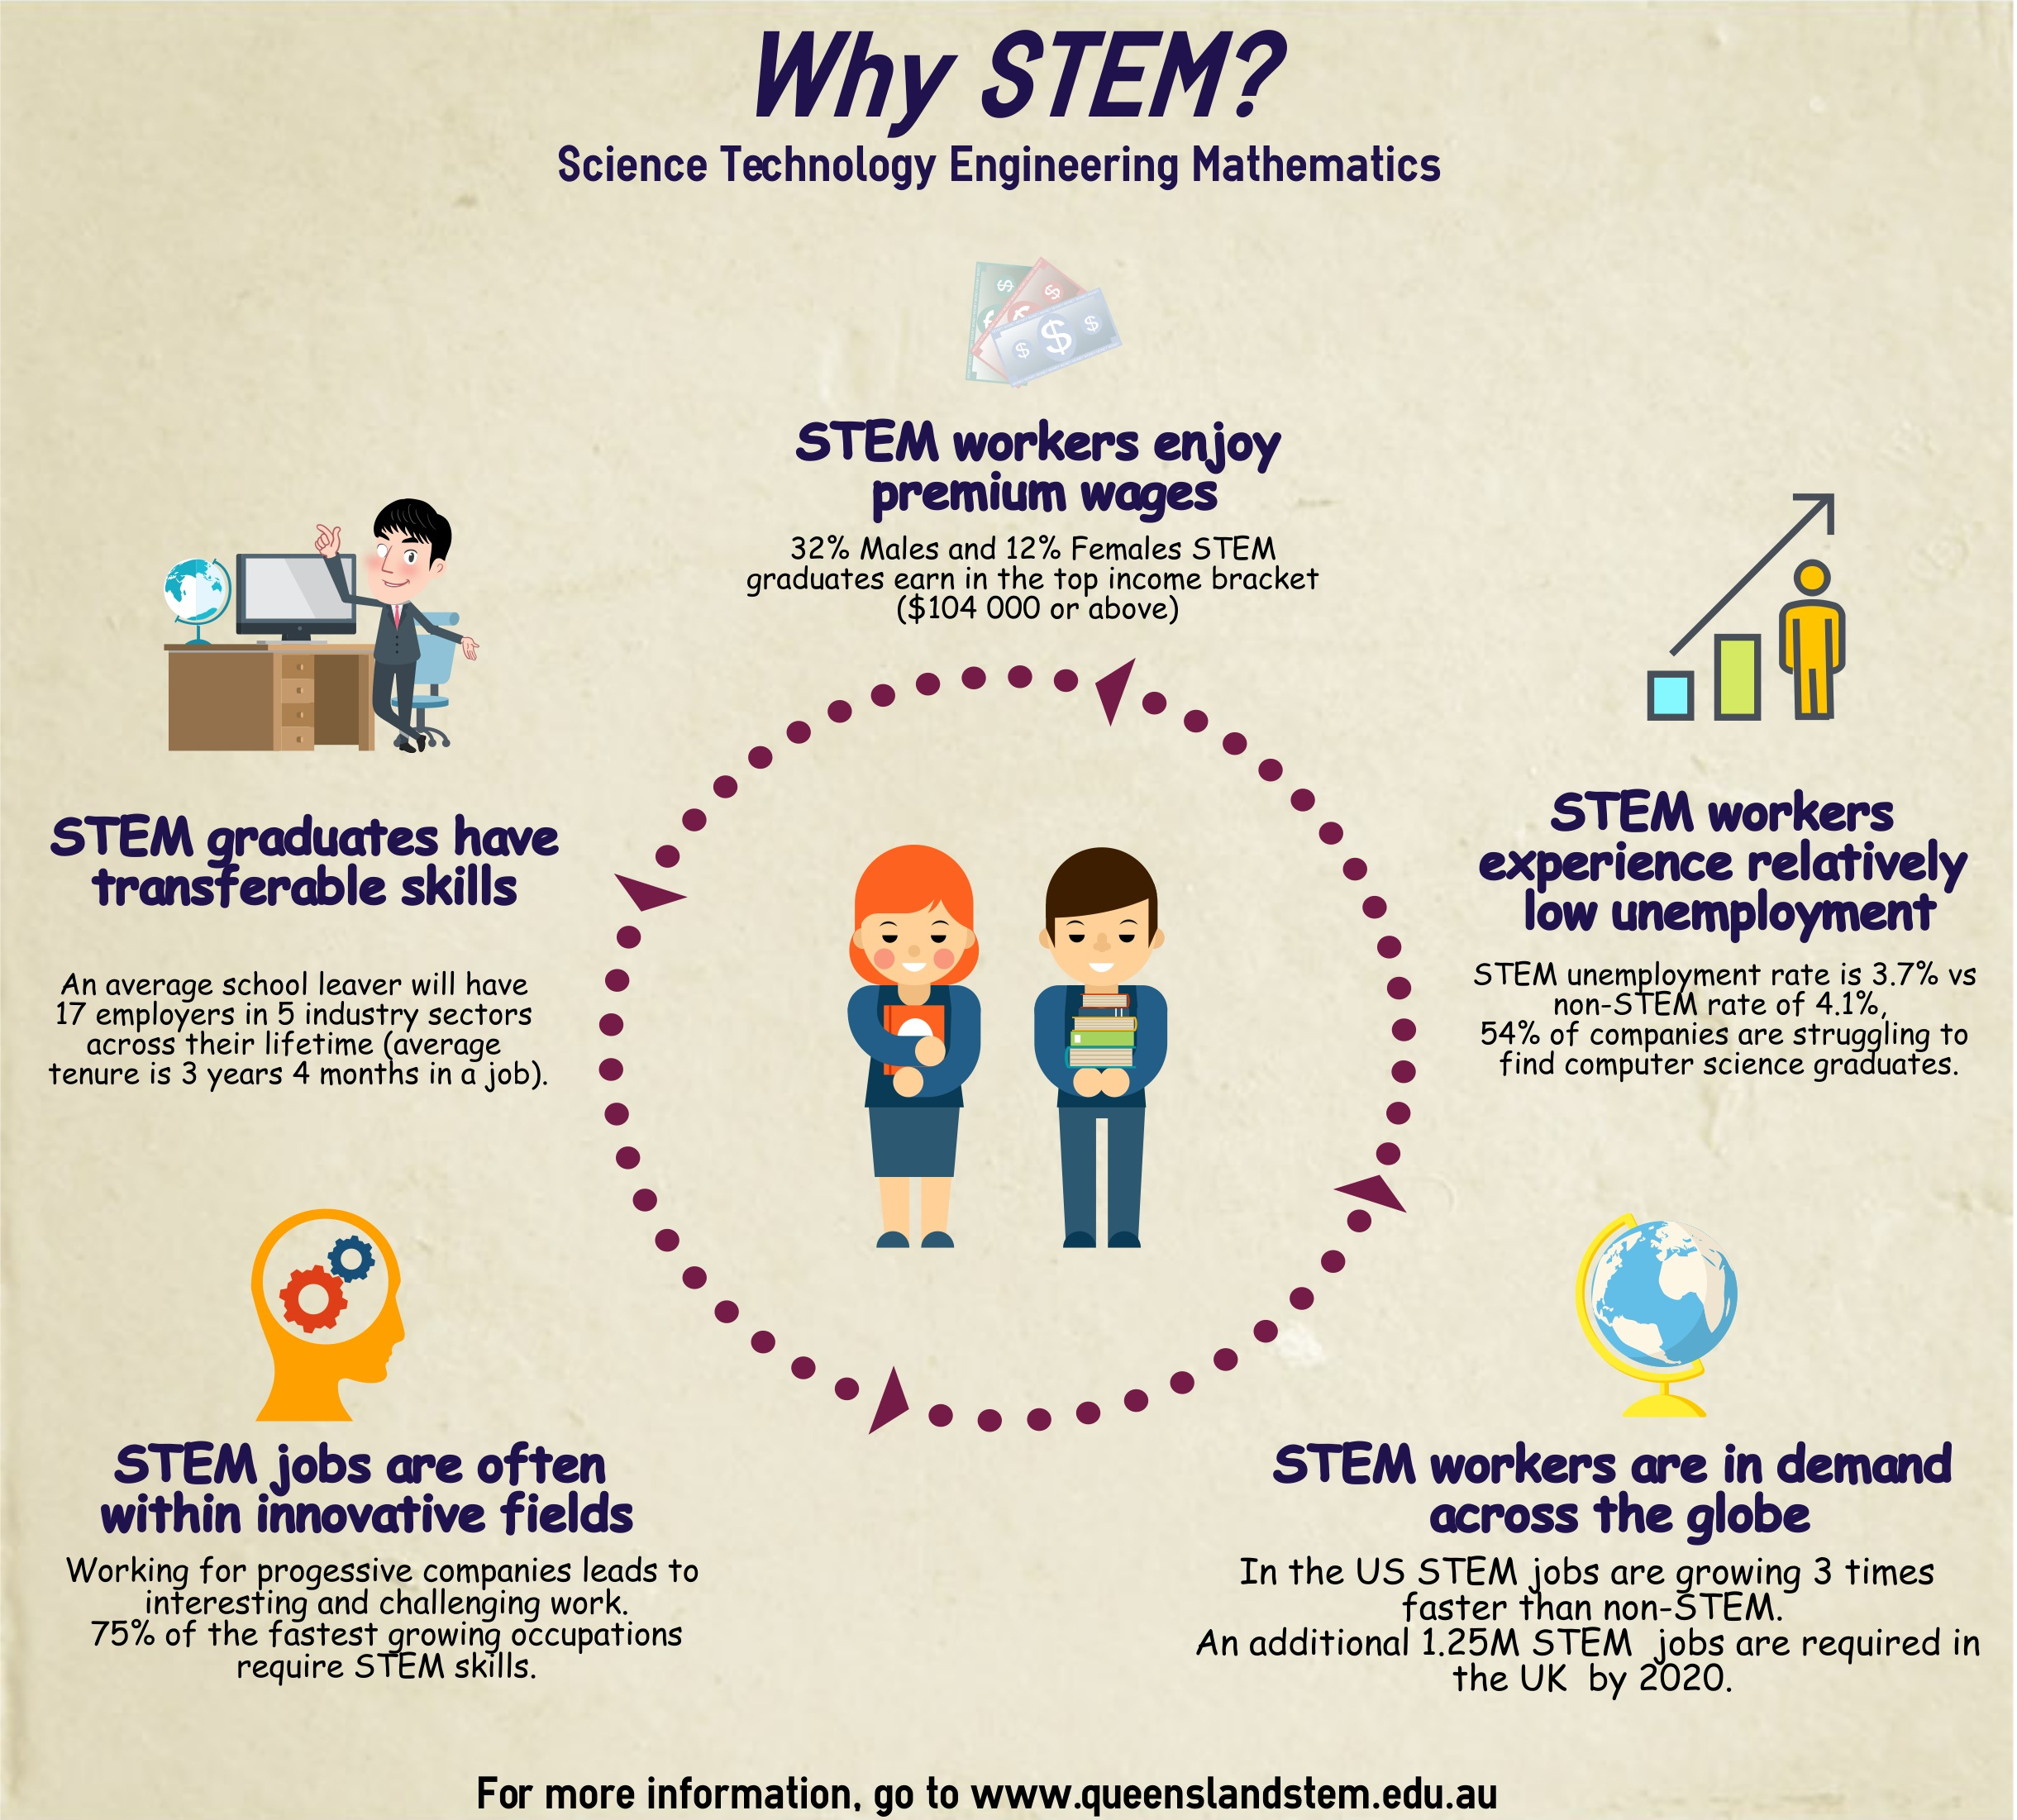 Downloads | The Queensland STEM Education Network